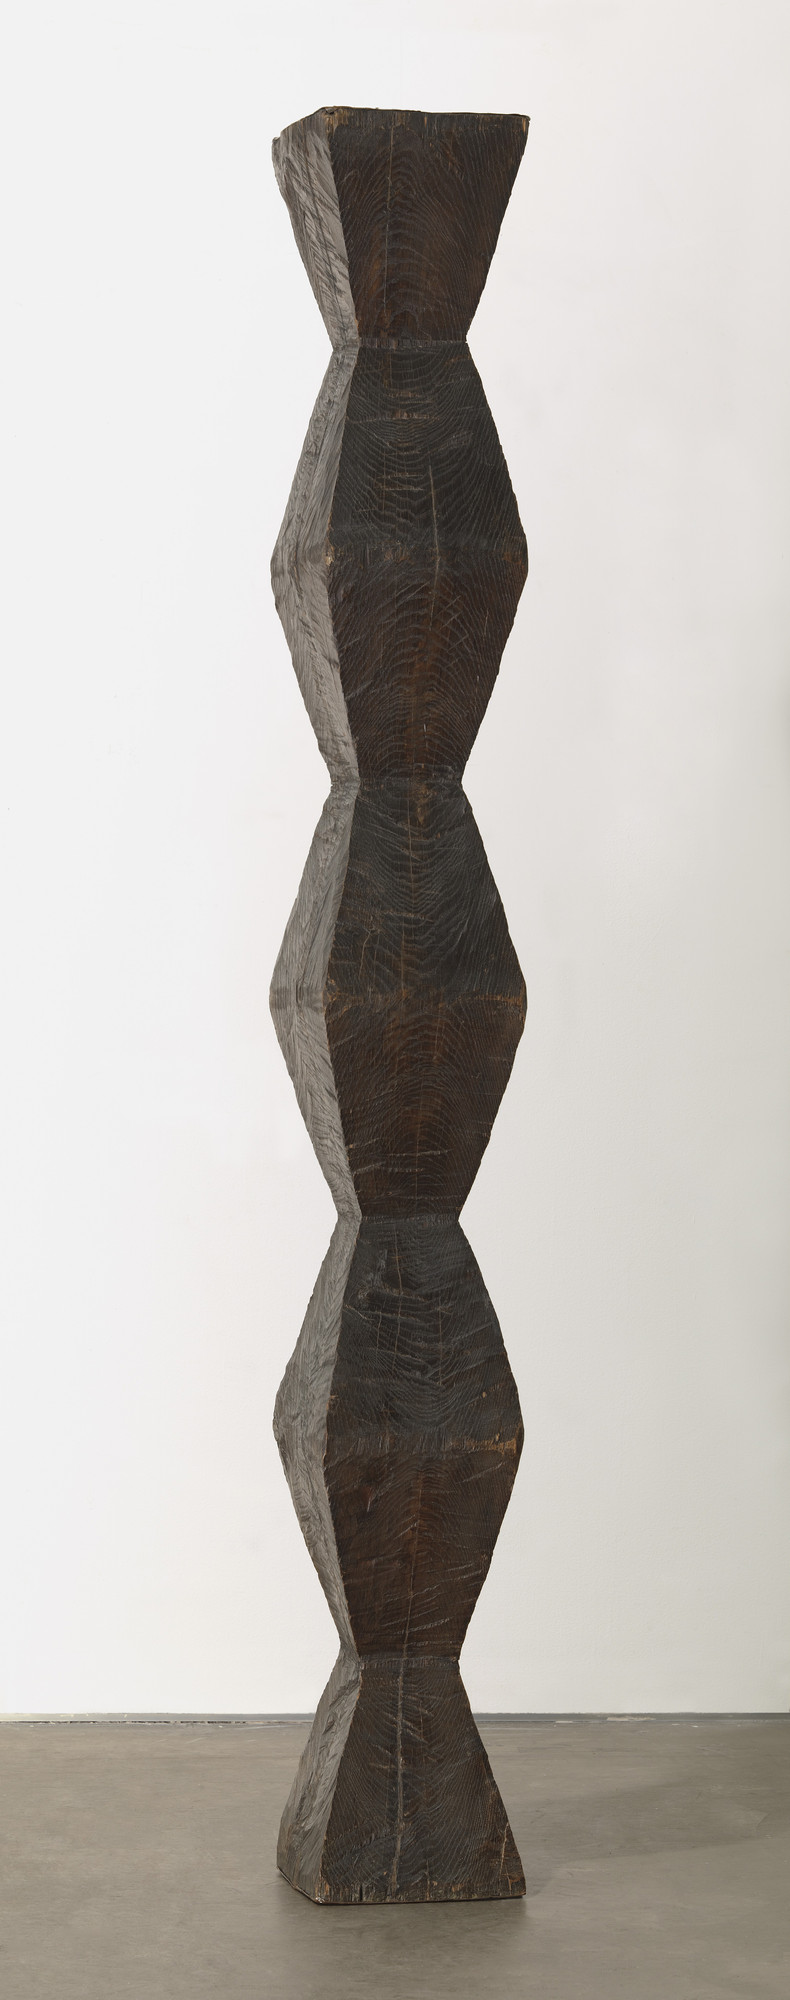 Constantin Brancusi. Endless Column. version I, 1918